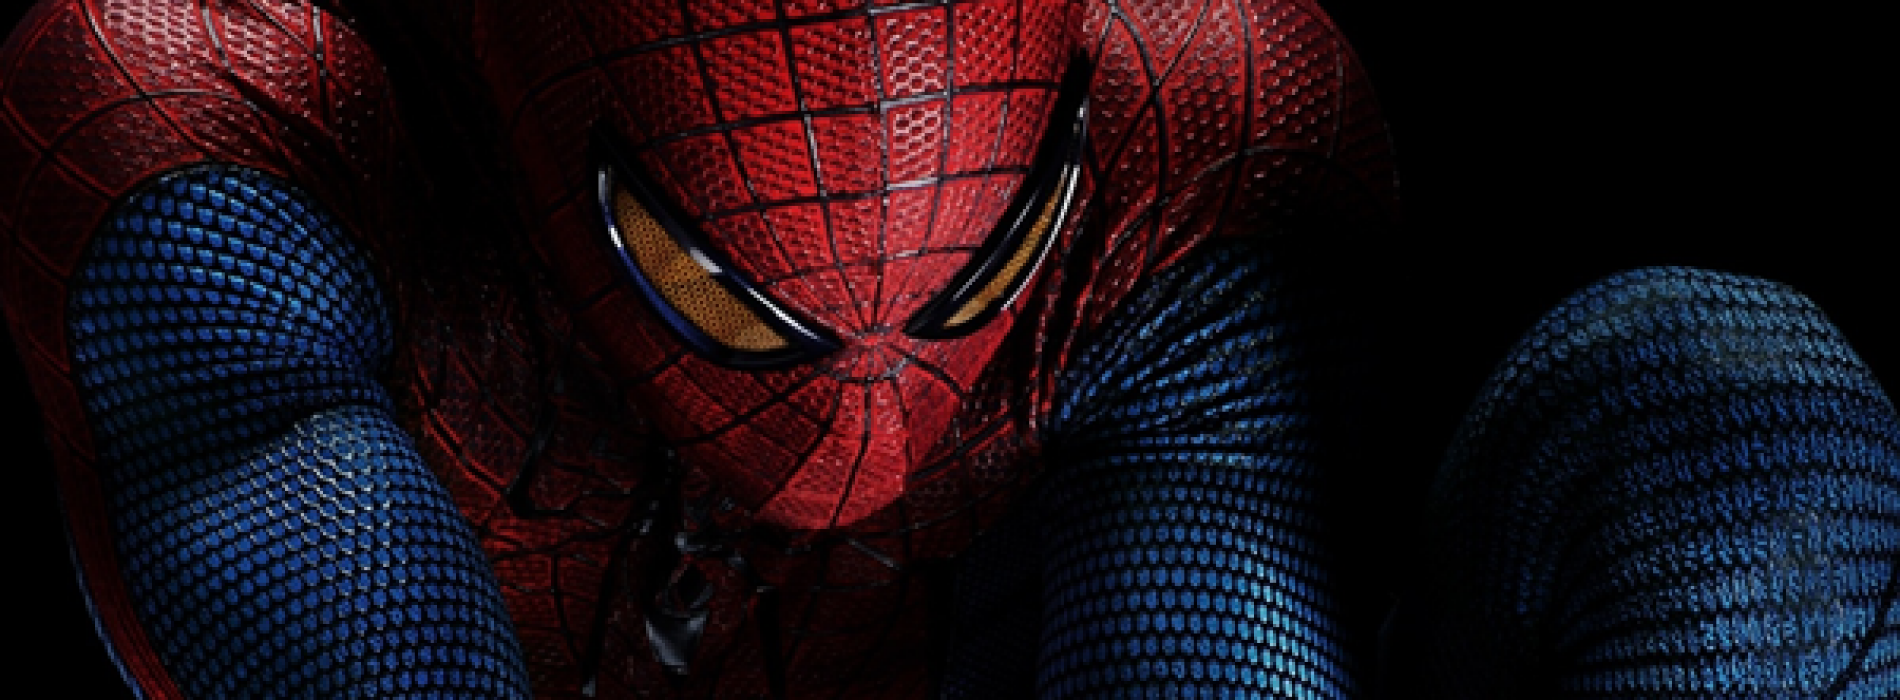 Gameloft announces official Amazing Spider-Man game